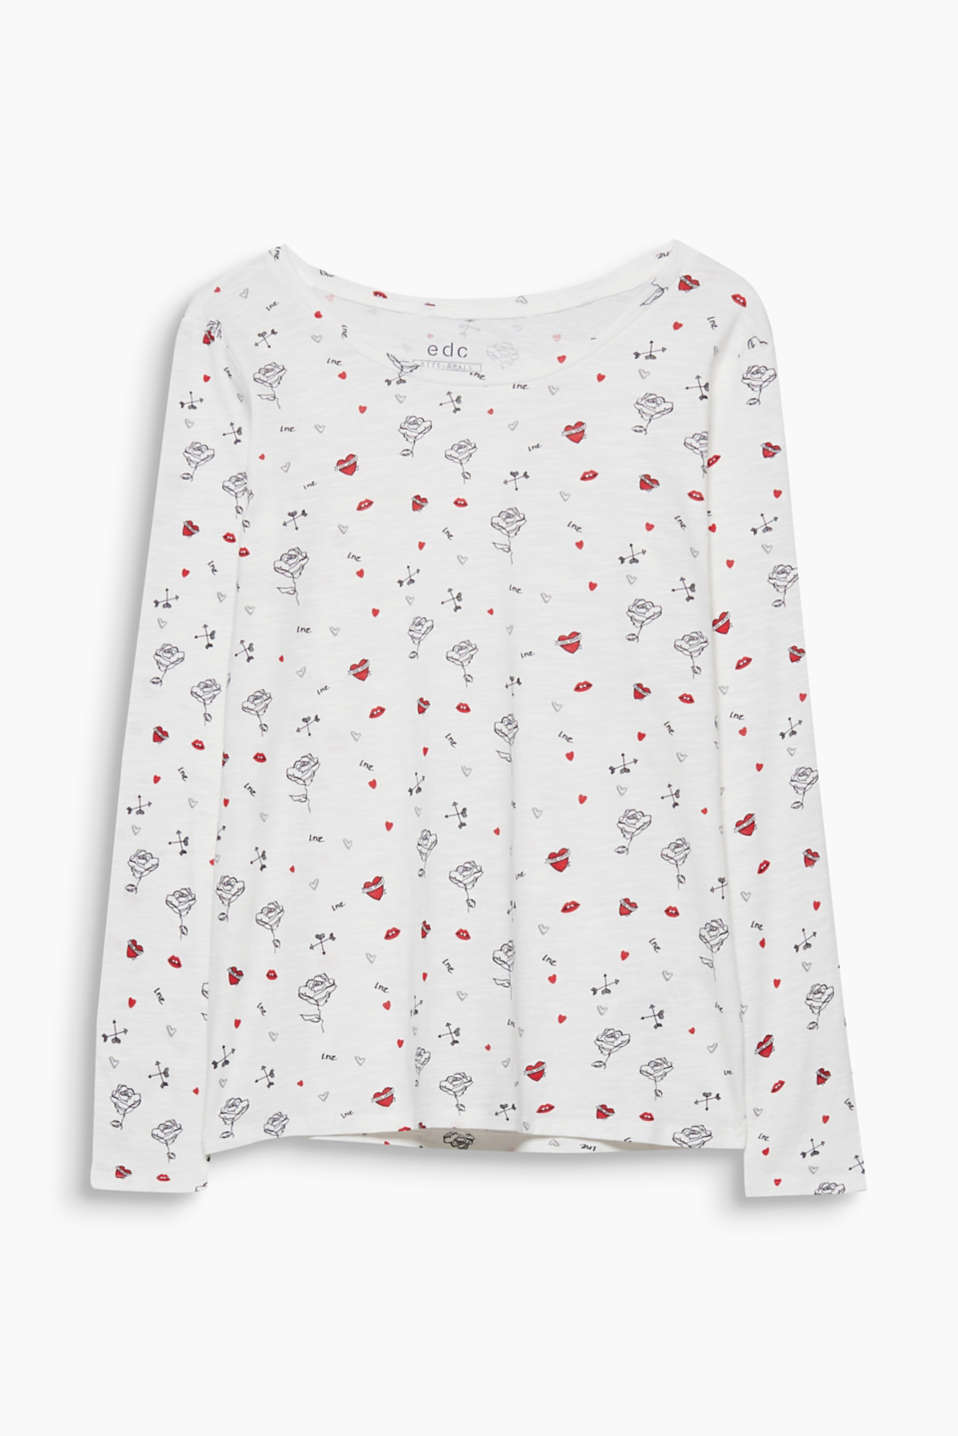 Love is in the air! With its all-over print, this long sleeve cotton top is completely under the banner of love.